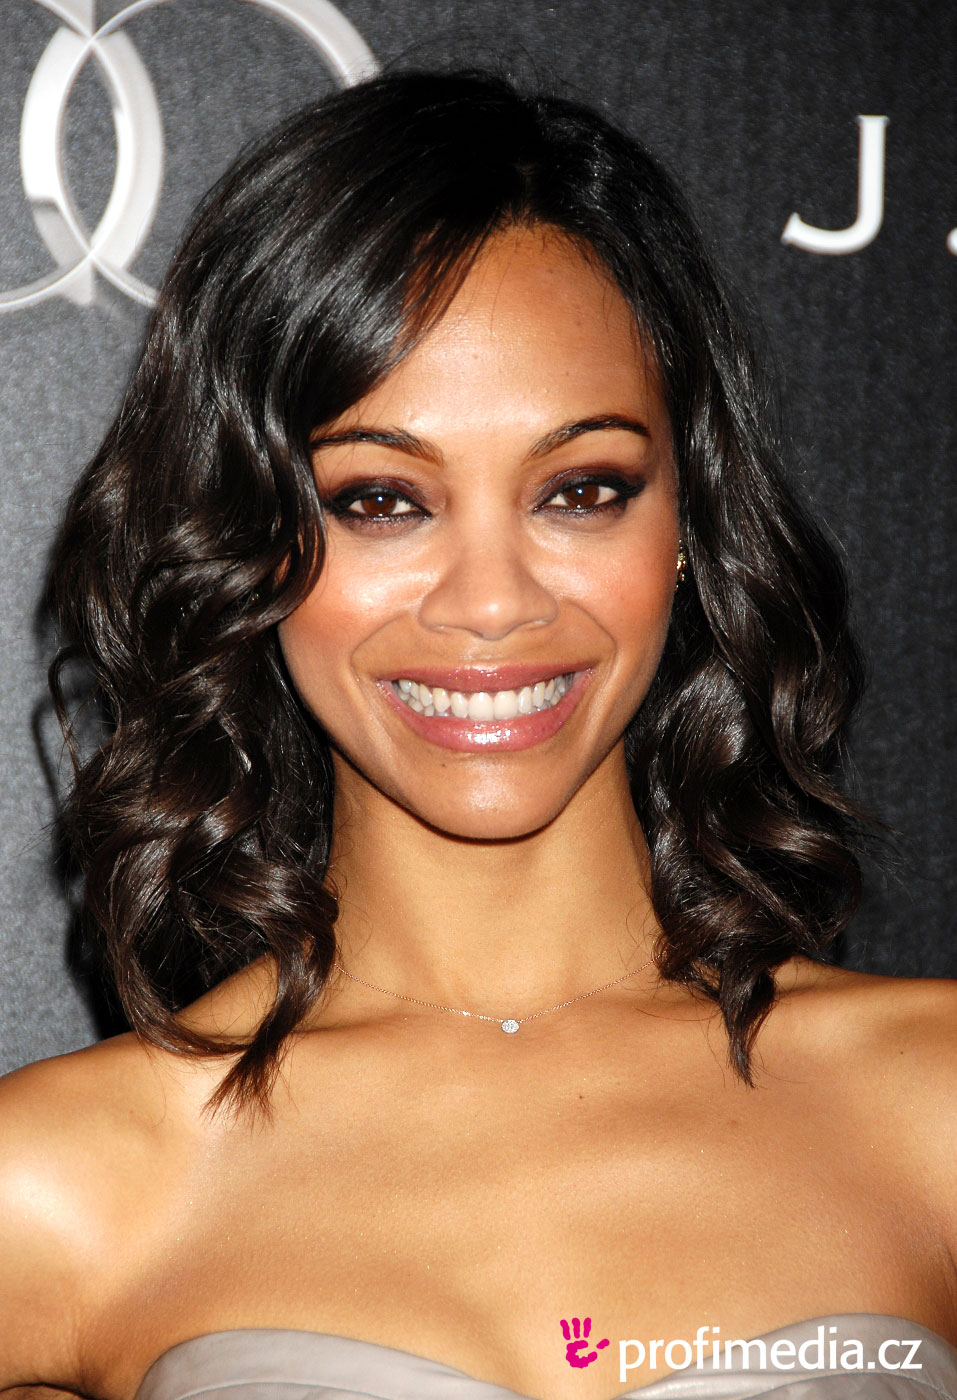 Short Black Hair: The Hottest Hairstyles Today - LiveAbout